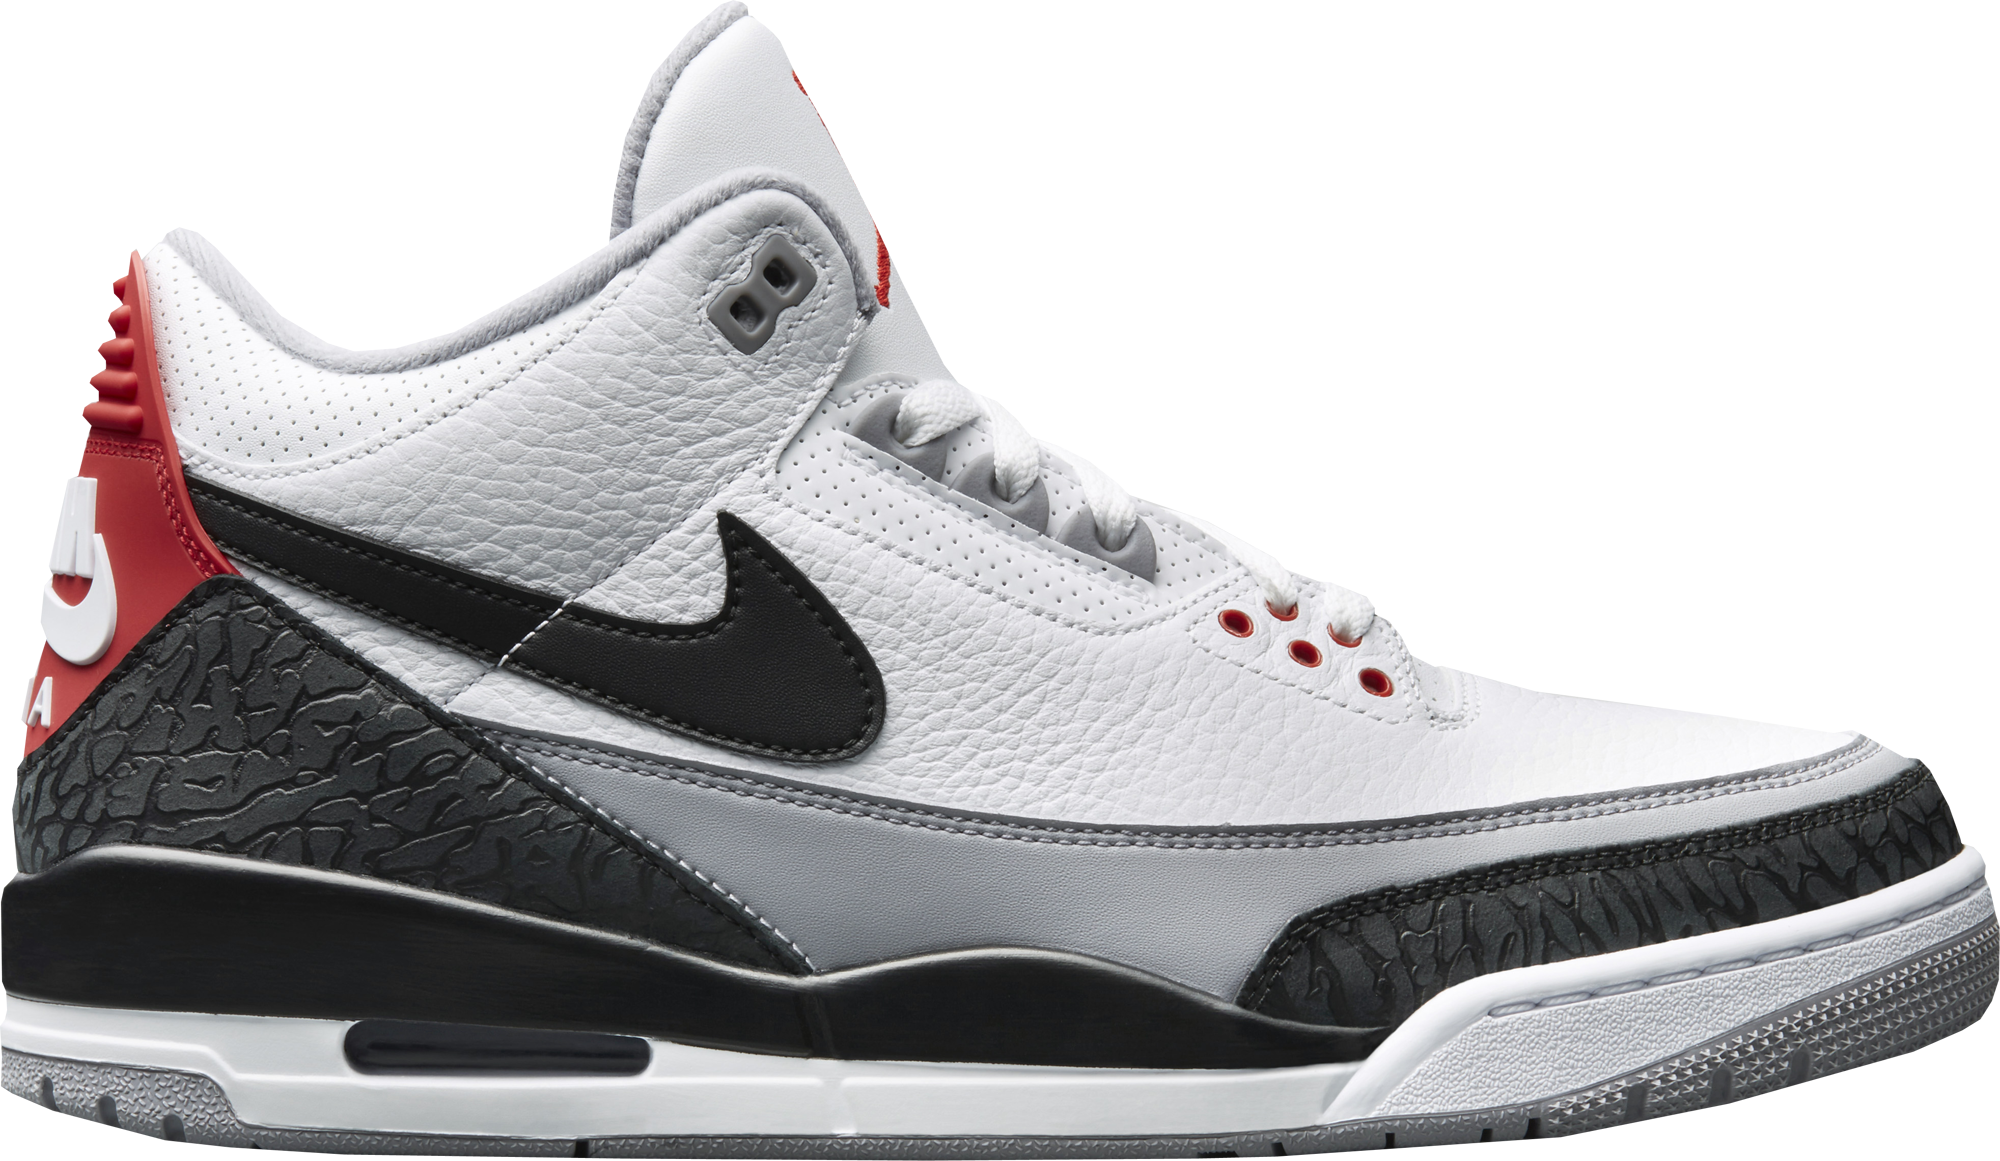 Air Jordan 3 Tinker Hatfield Fire Red